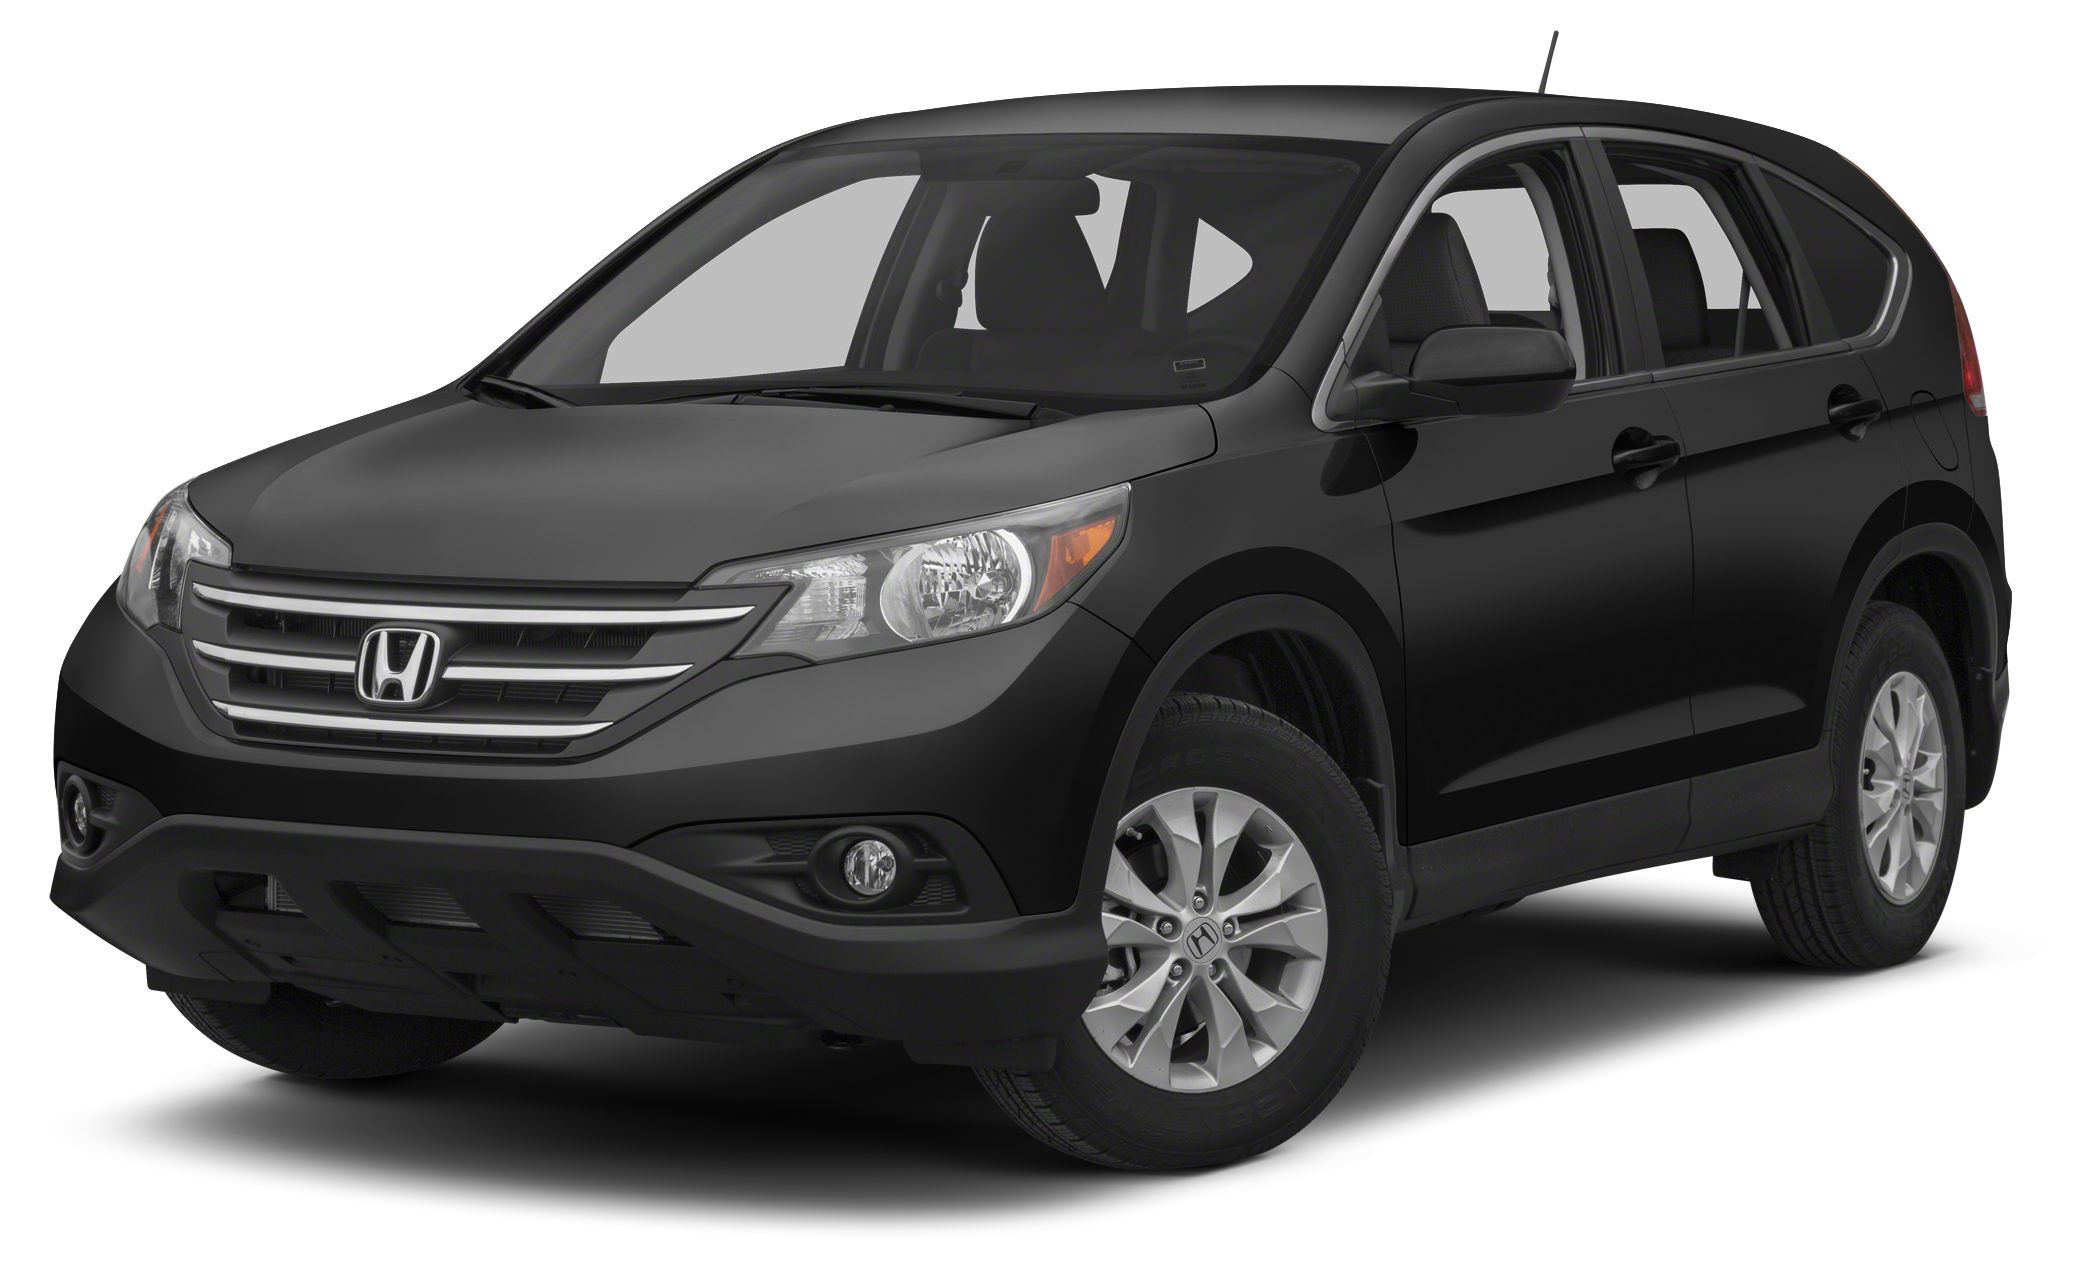 2013 Honda CR-V EX-L CARFAX 1-Owner PRICED TO MOVE 600 below Kelley Blue Book EPA 30 MPG Hwy2